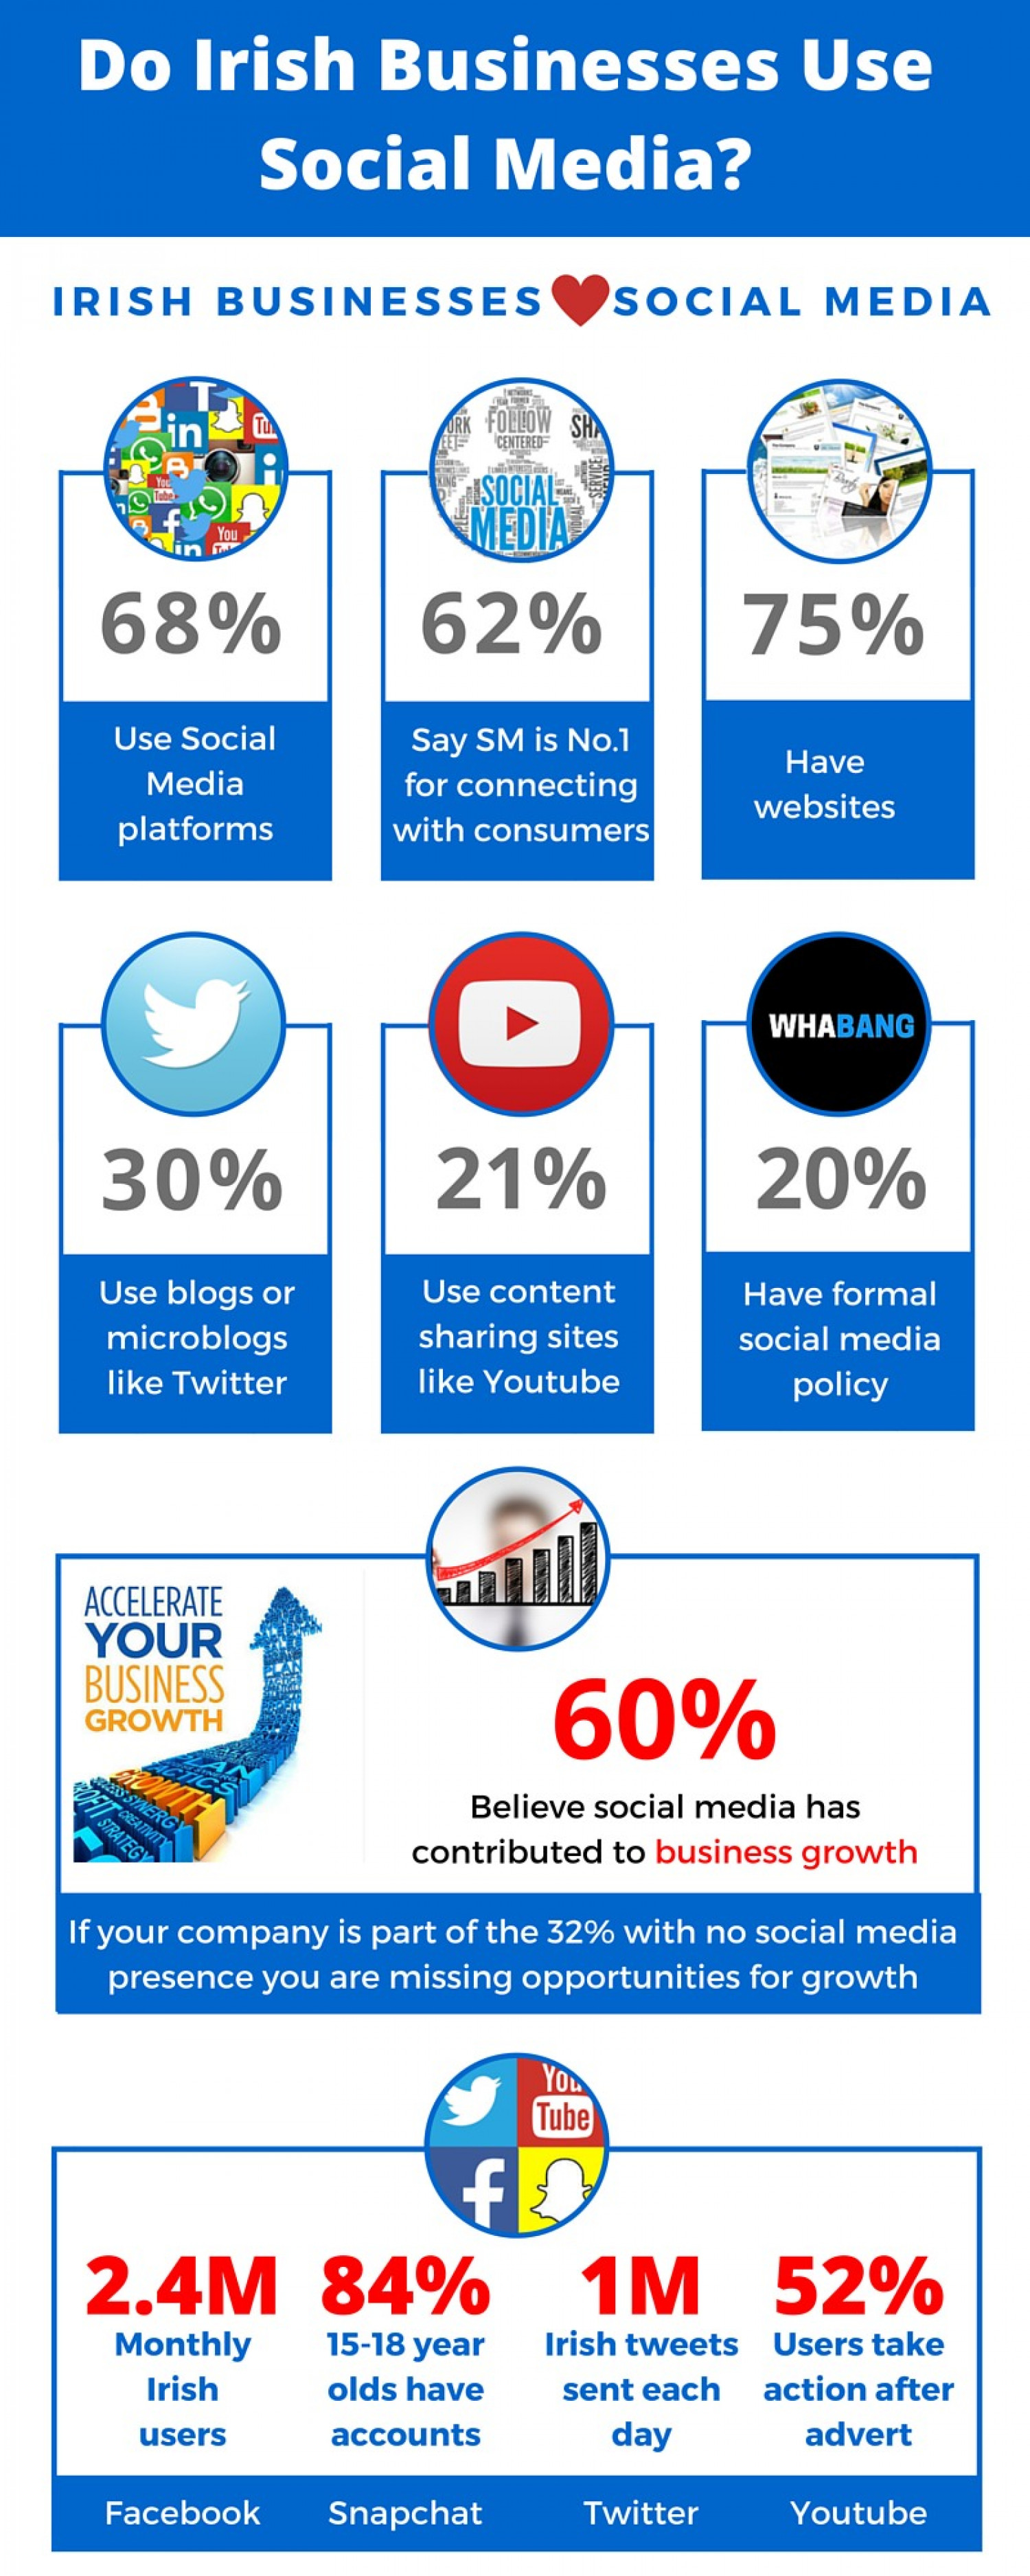 Does social media contribute to business growth? Infographic